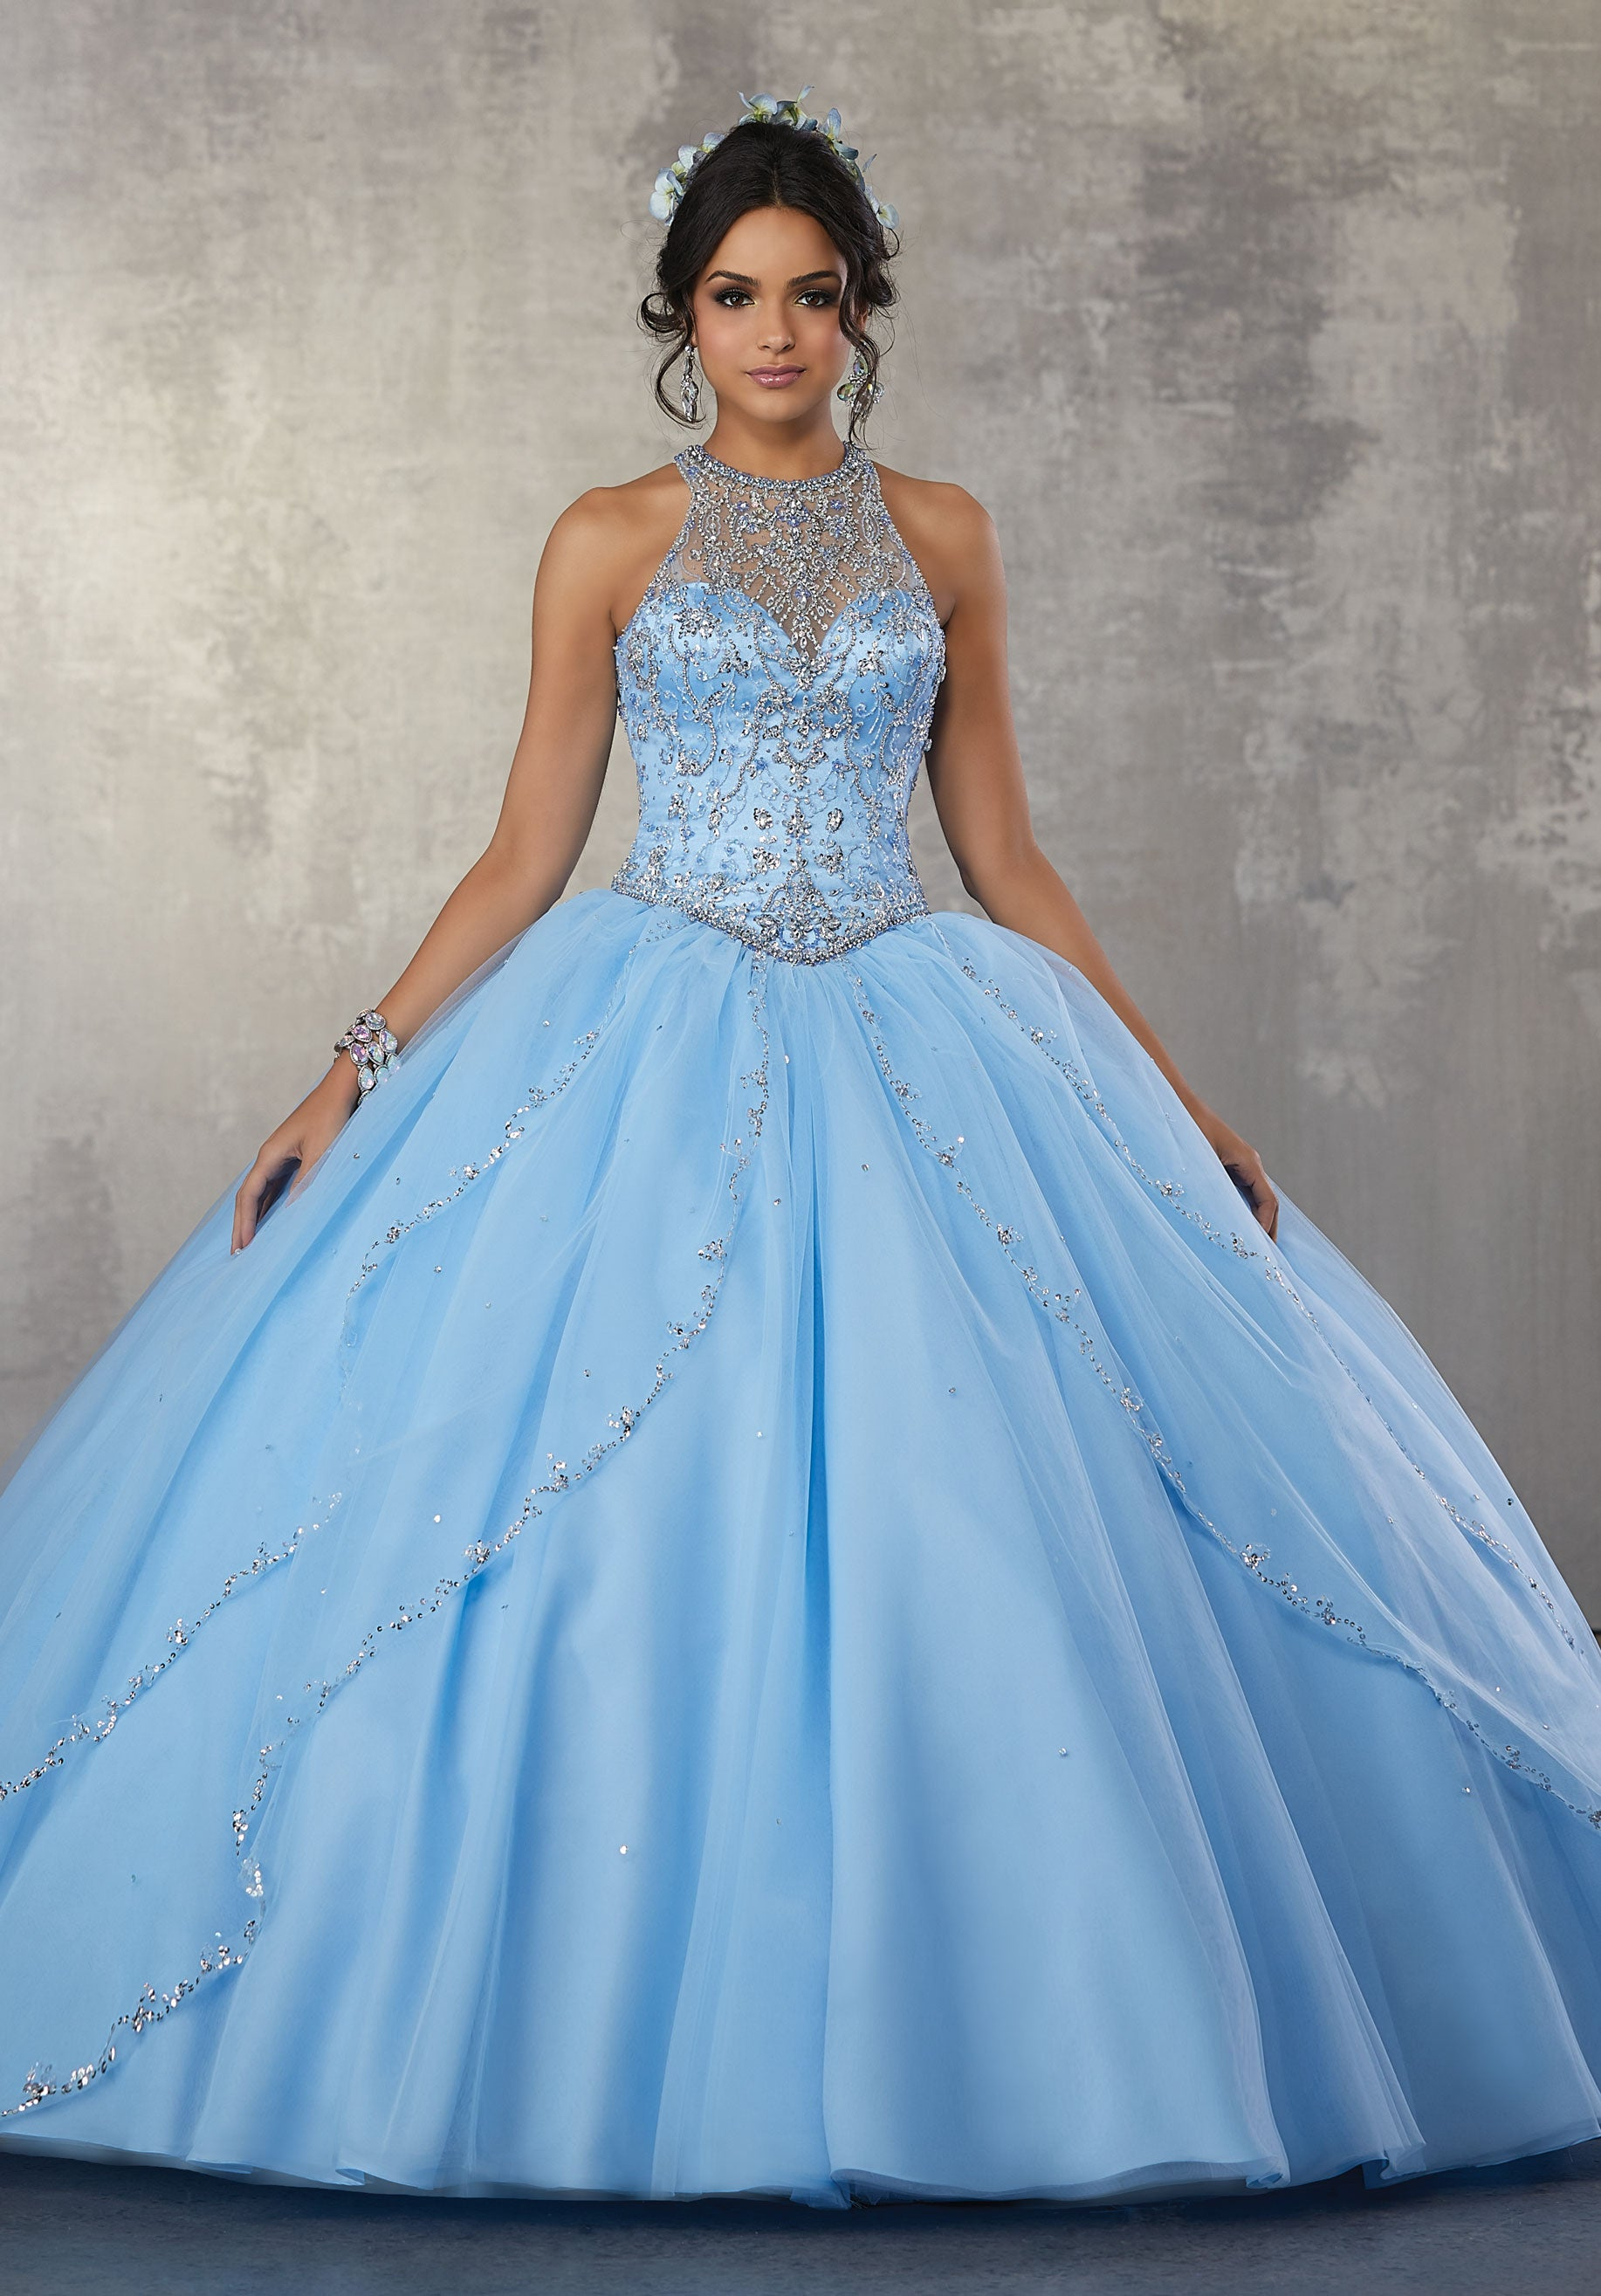 78069 Quinceanera Princess Tulle Ballgown with Beaded Trim and Beaded Bodice